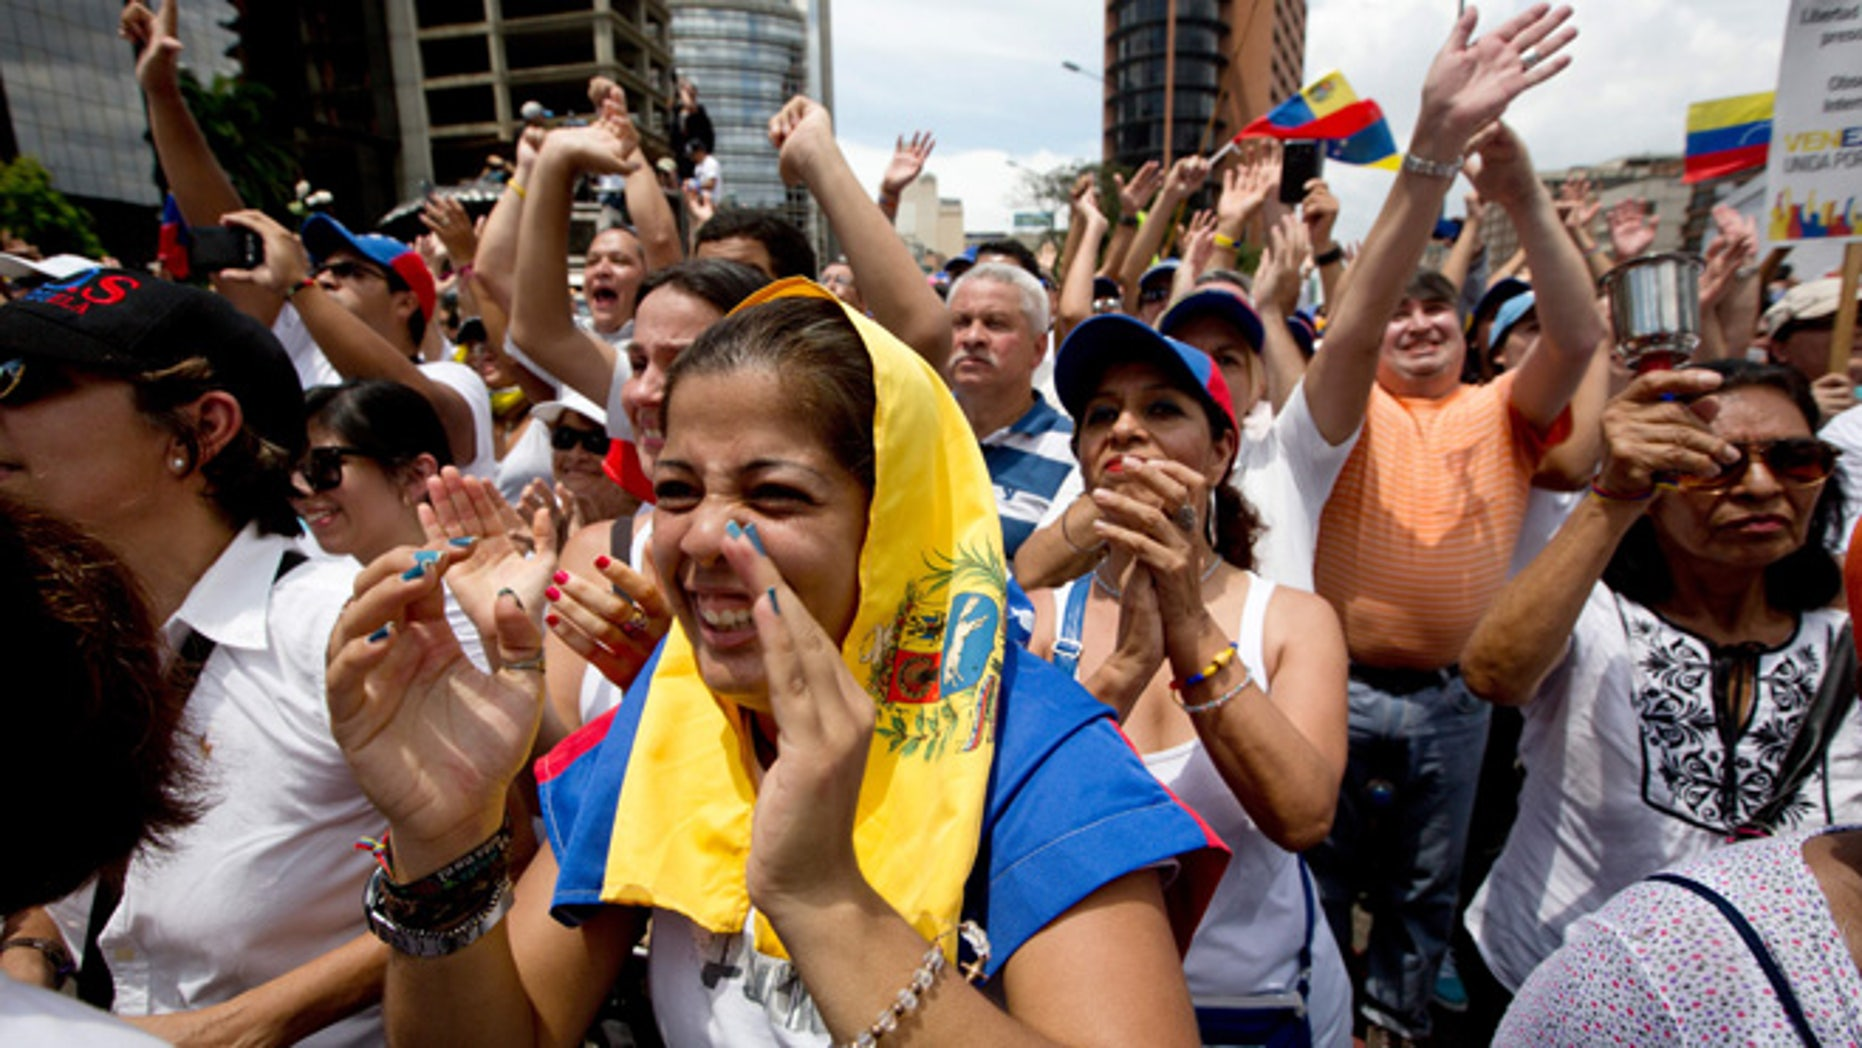 Venezuelans have been protesting the shortages of basic goods and governing style of President Nicolas Maduro.